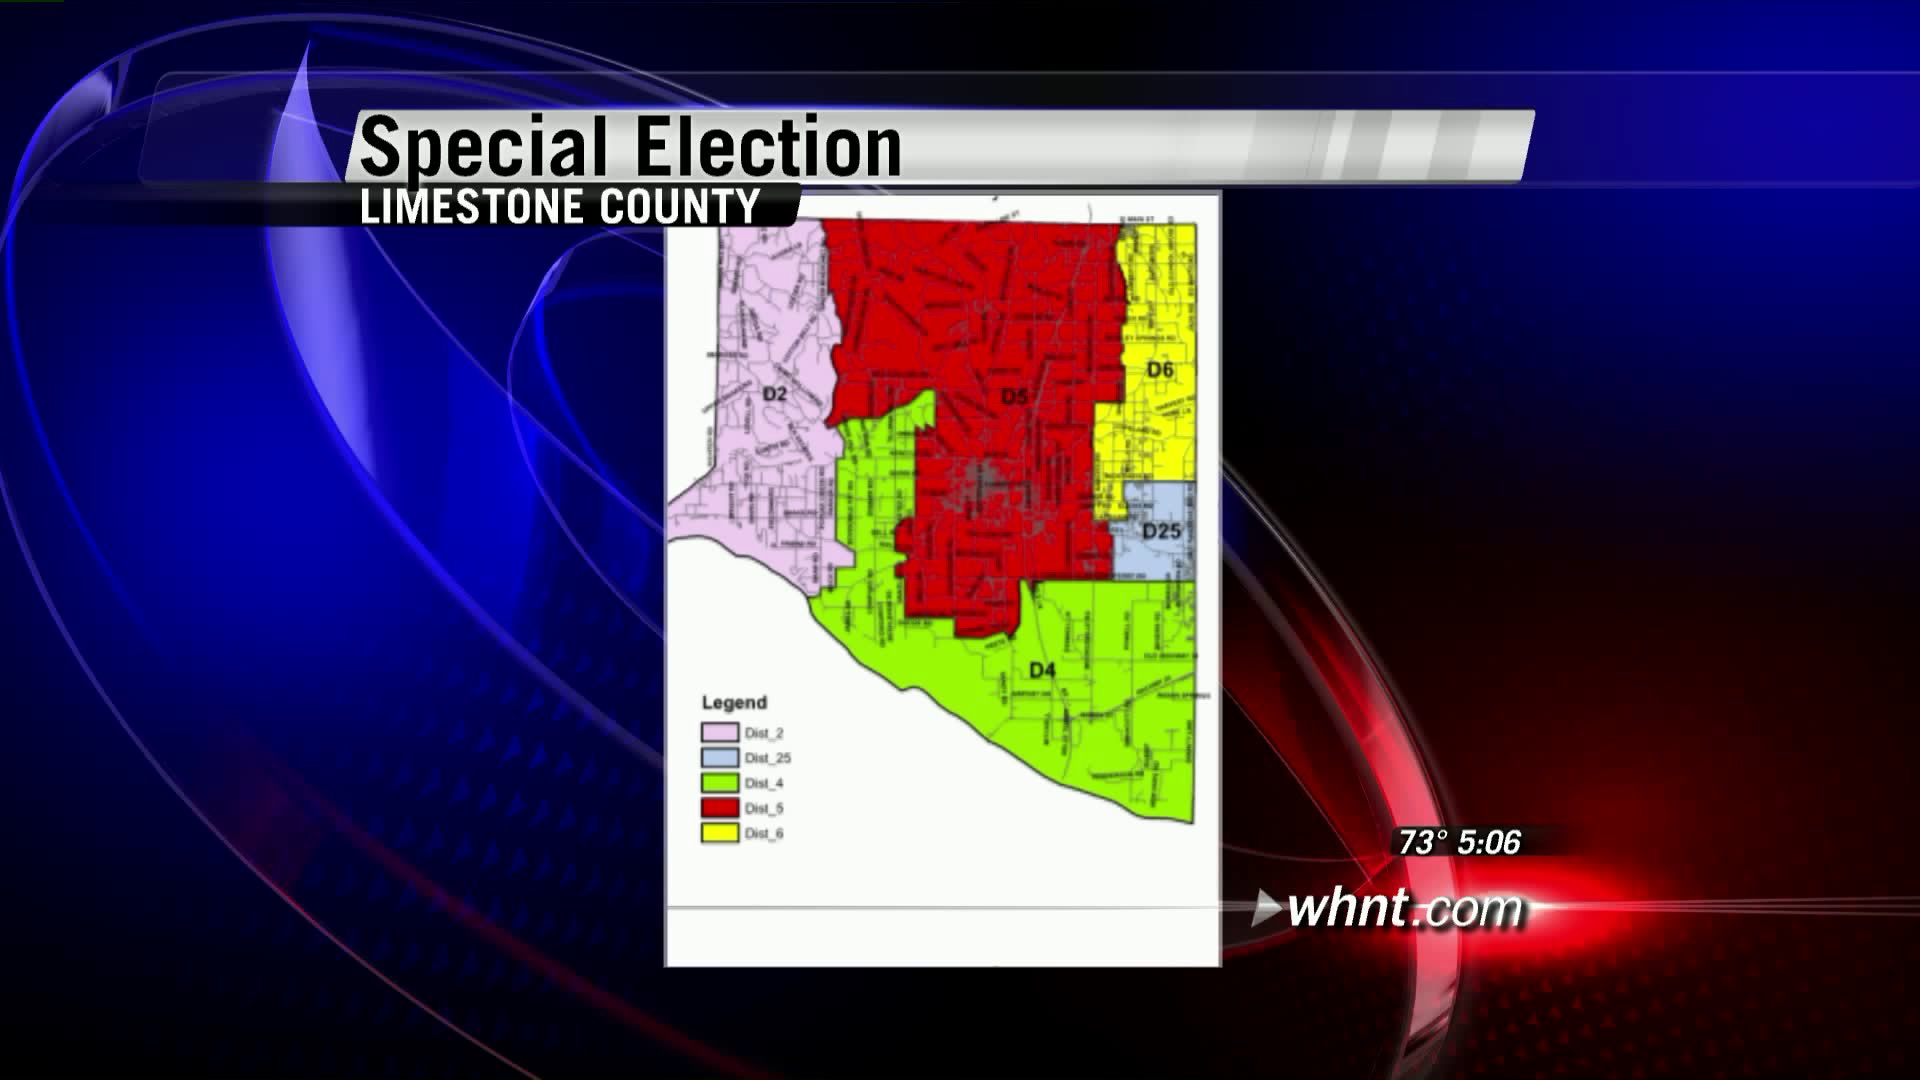 District Map for Limestone County. District 5 is shaded red.